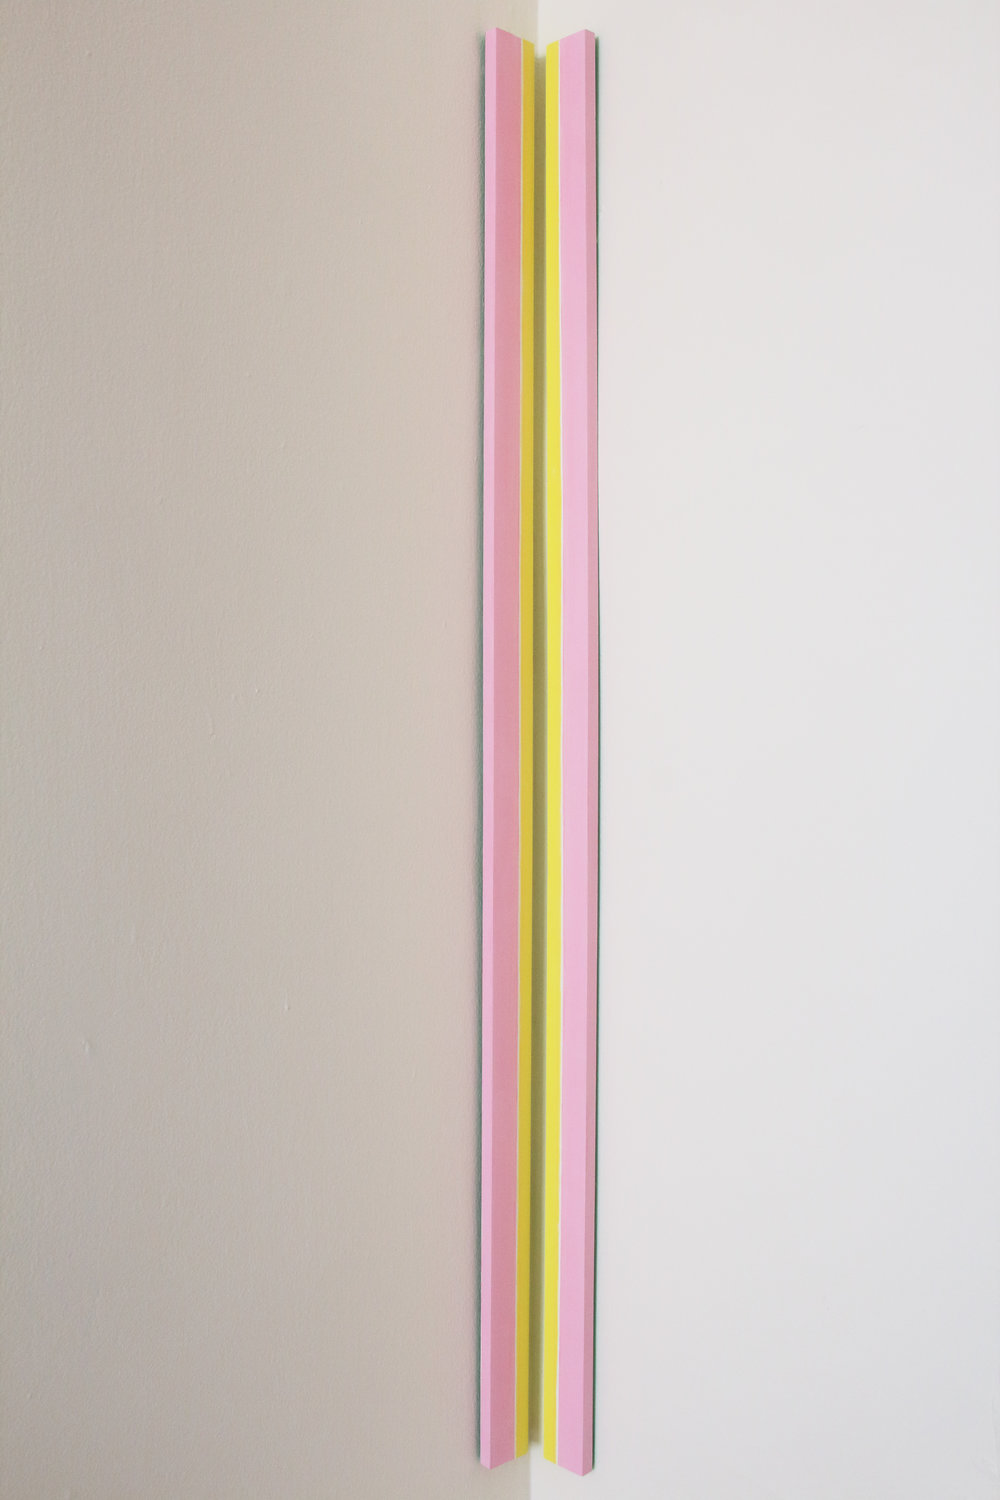 Patricia Zarate,  On Slender Stems (pink) , 2017